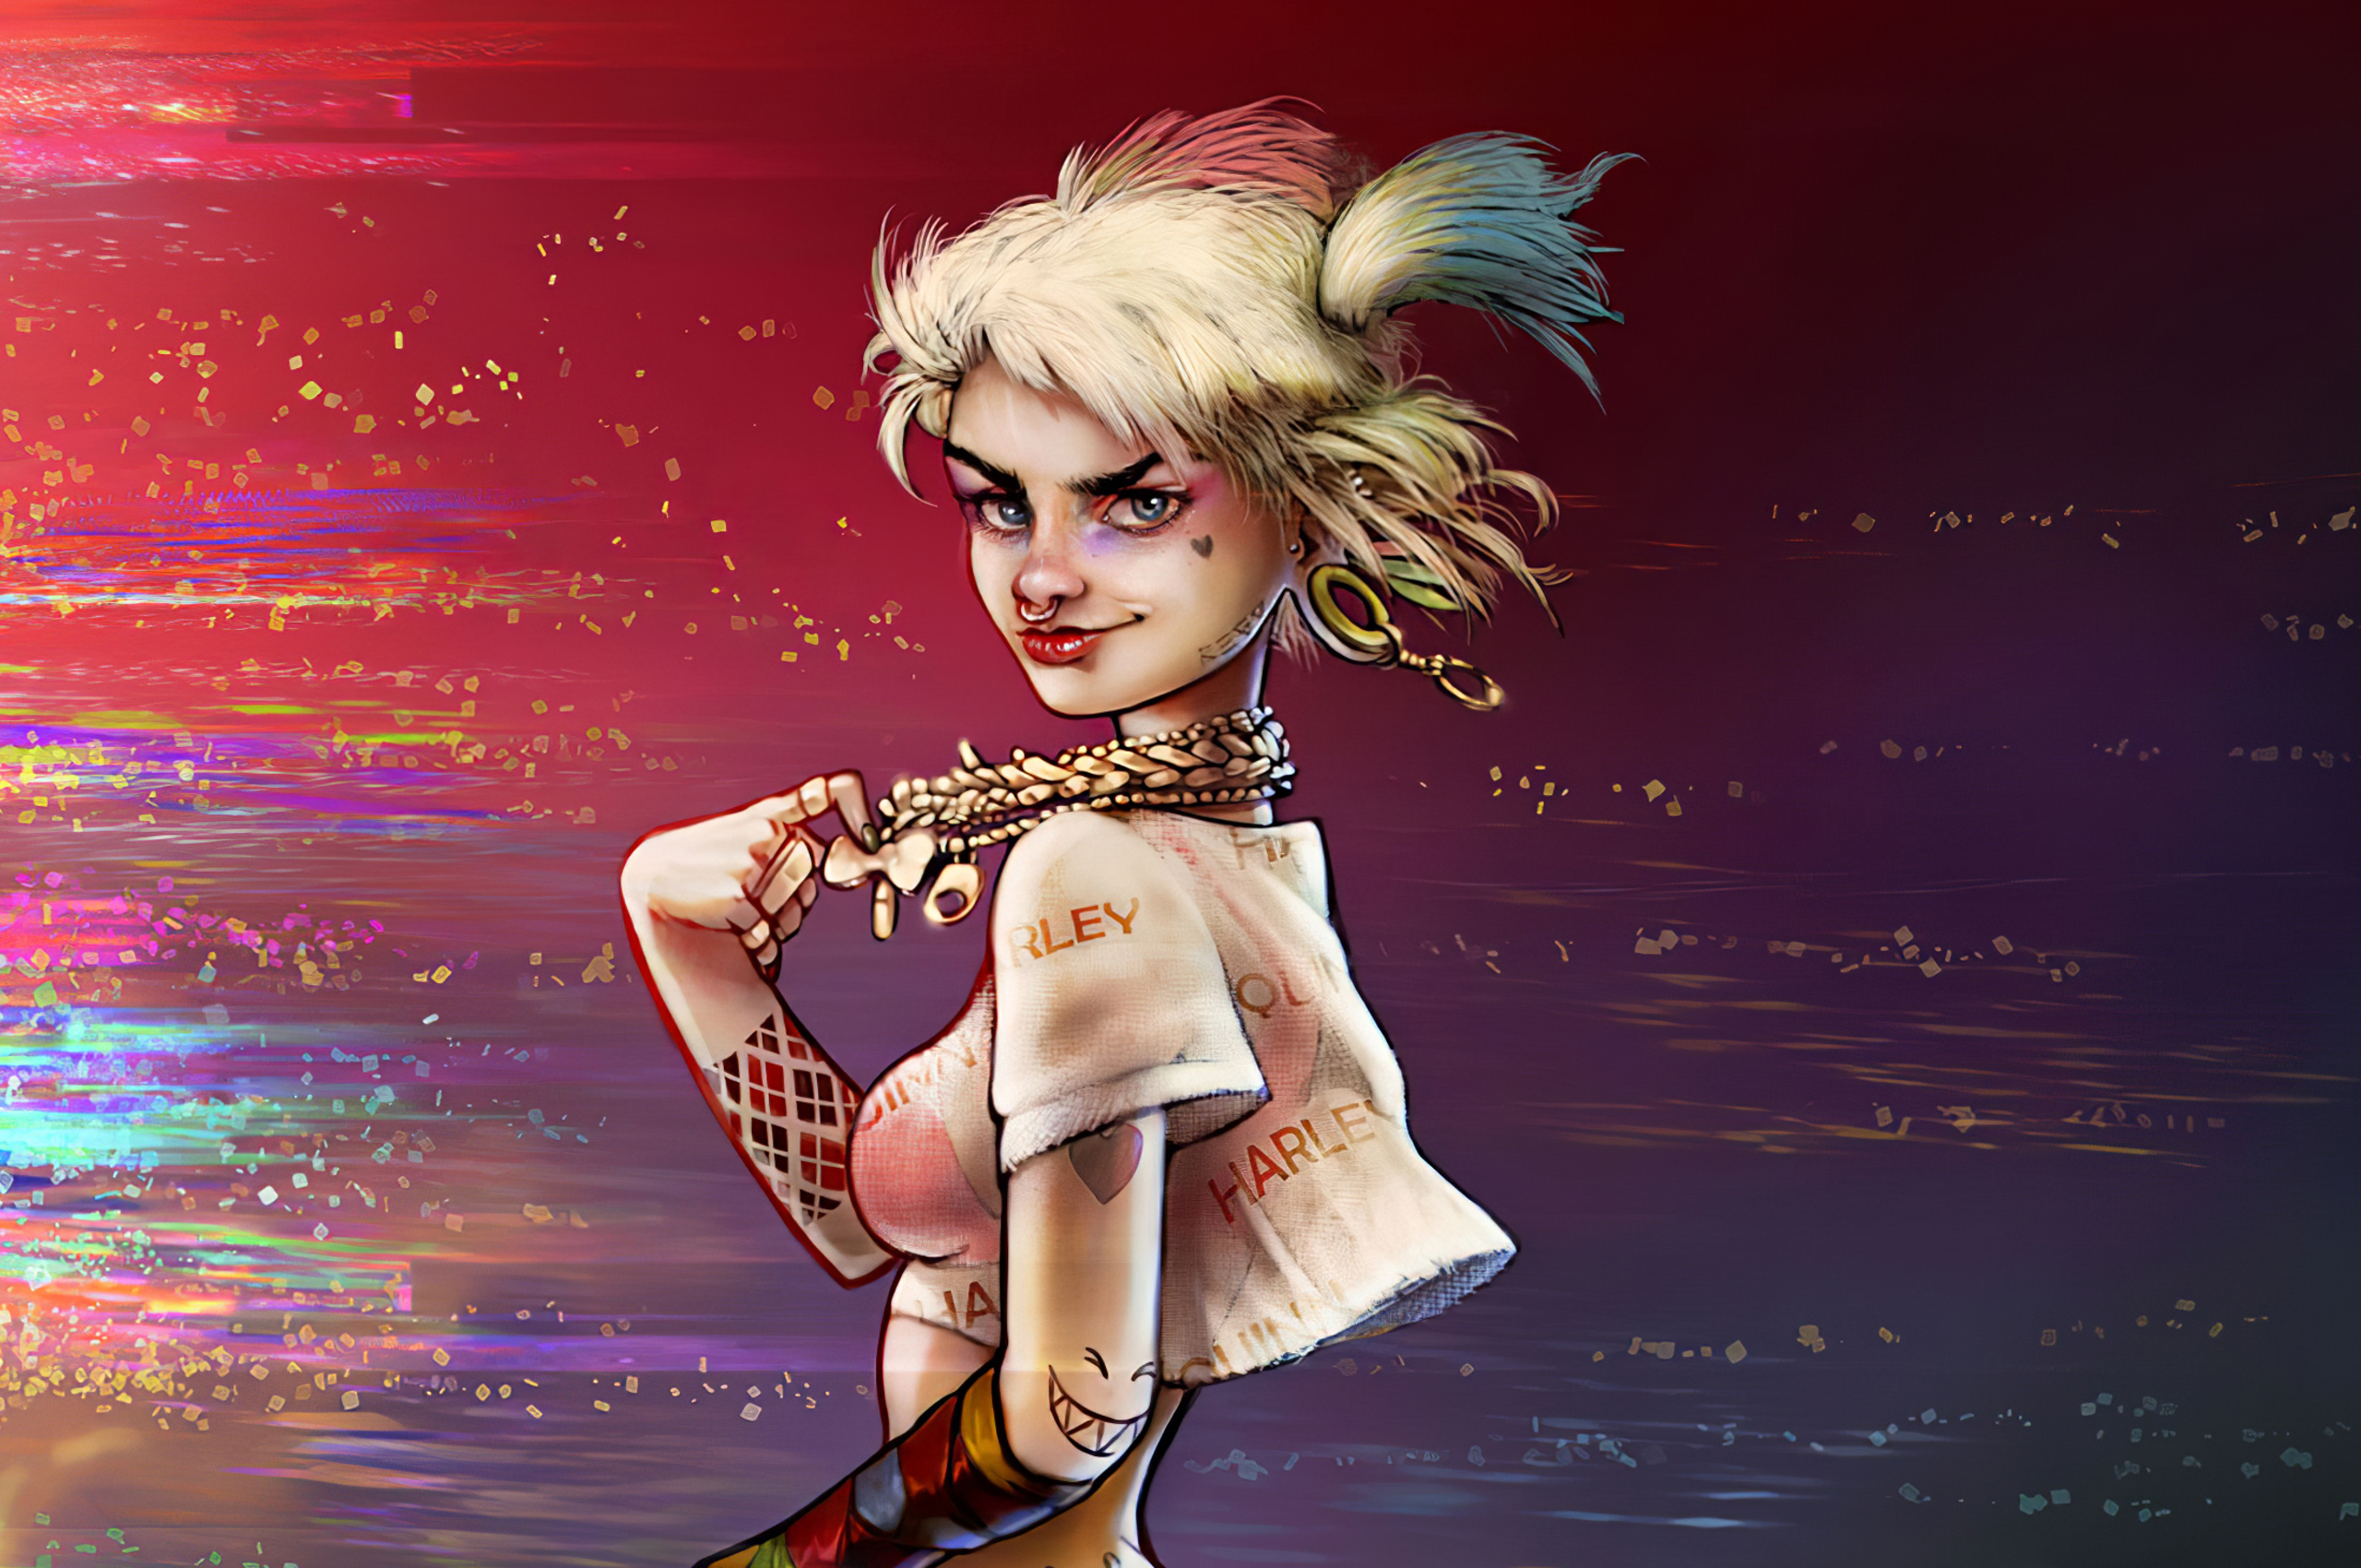 harley-quinn-sketch-artwork-2020-e2.jpg